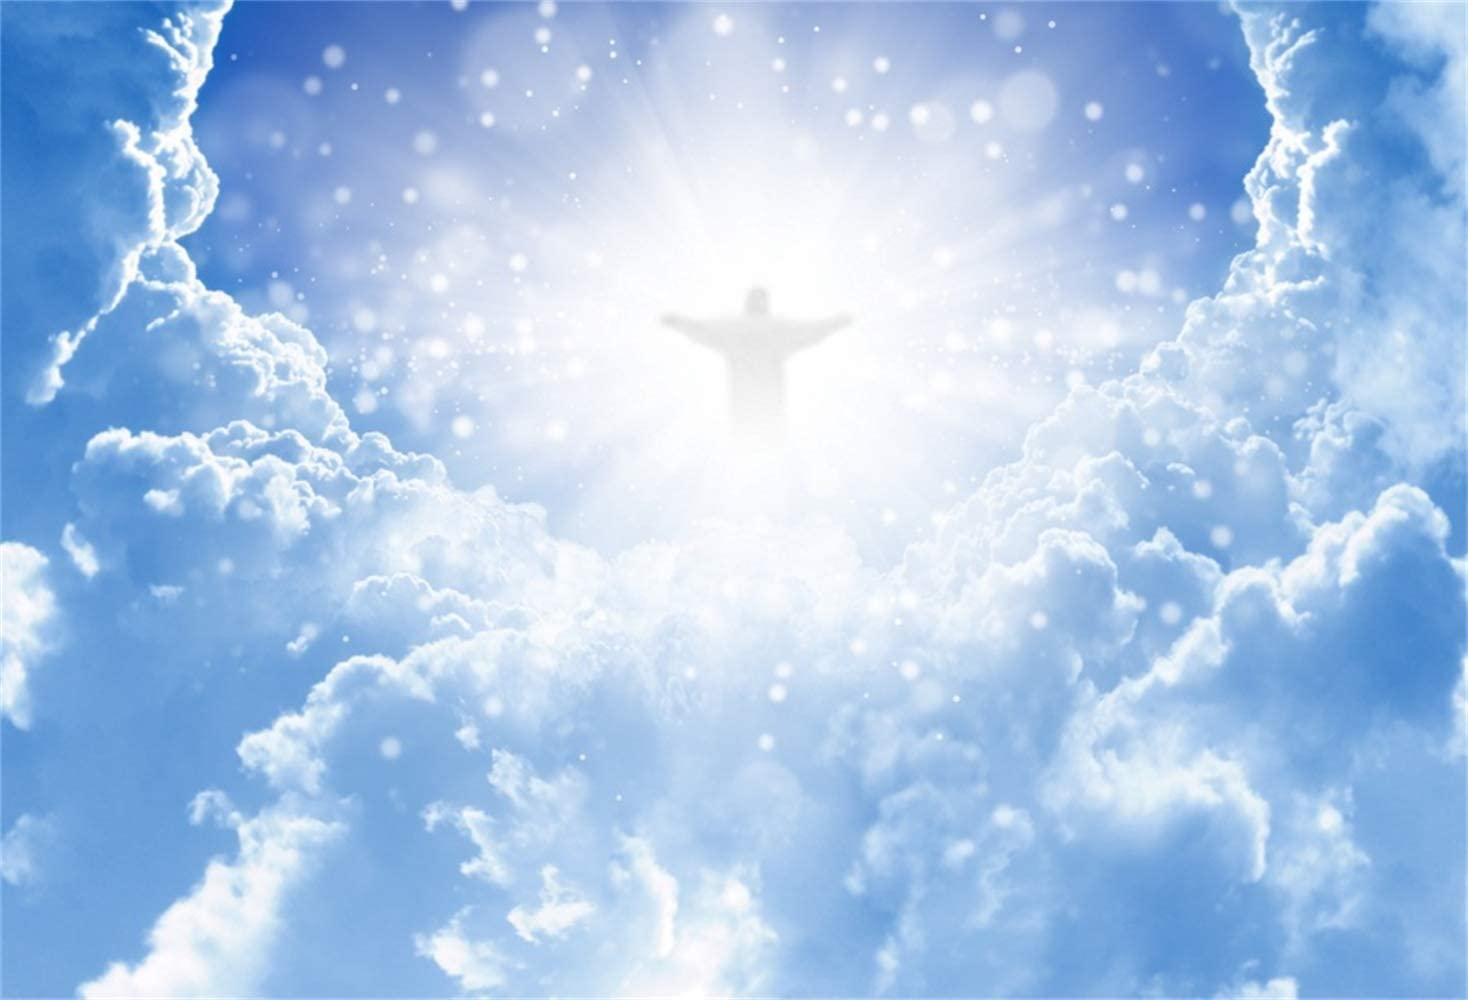 Amazon.com : Laeacco Jesus Christ Above The Heaven Clouds Circle Scene  Backdrop Vinyl 10x8ft Christian Photography Background Bible Story Trinity  Christmas Evening Party Church Activities Mural Religious Belief : Camera &  Photo